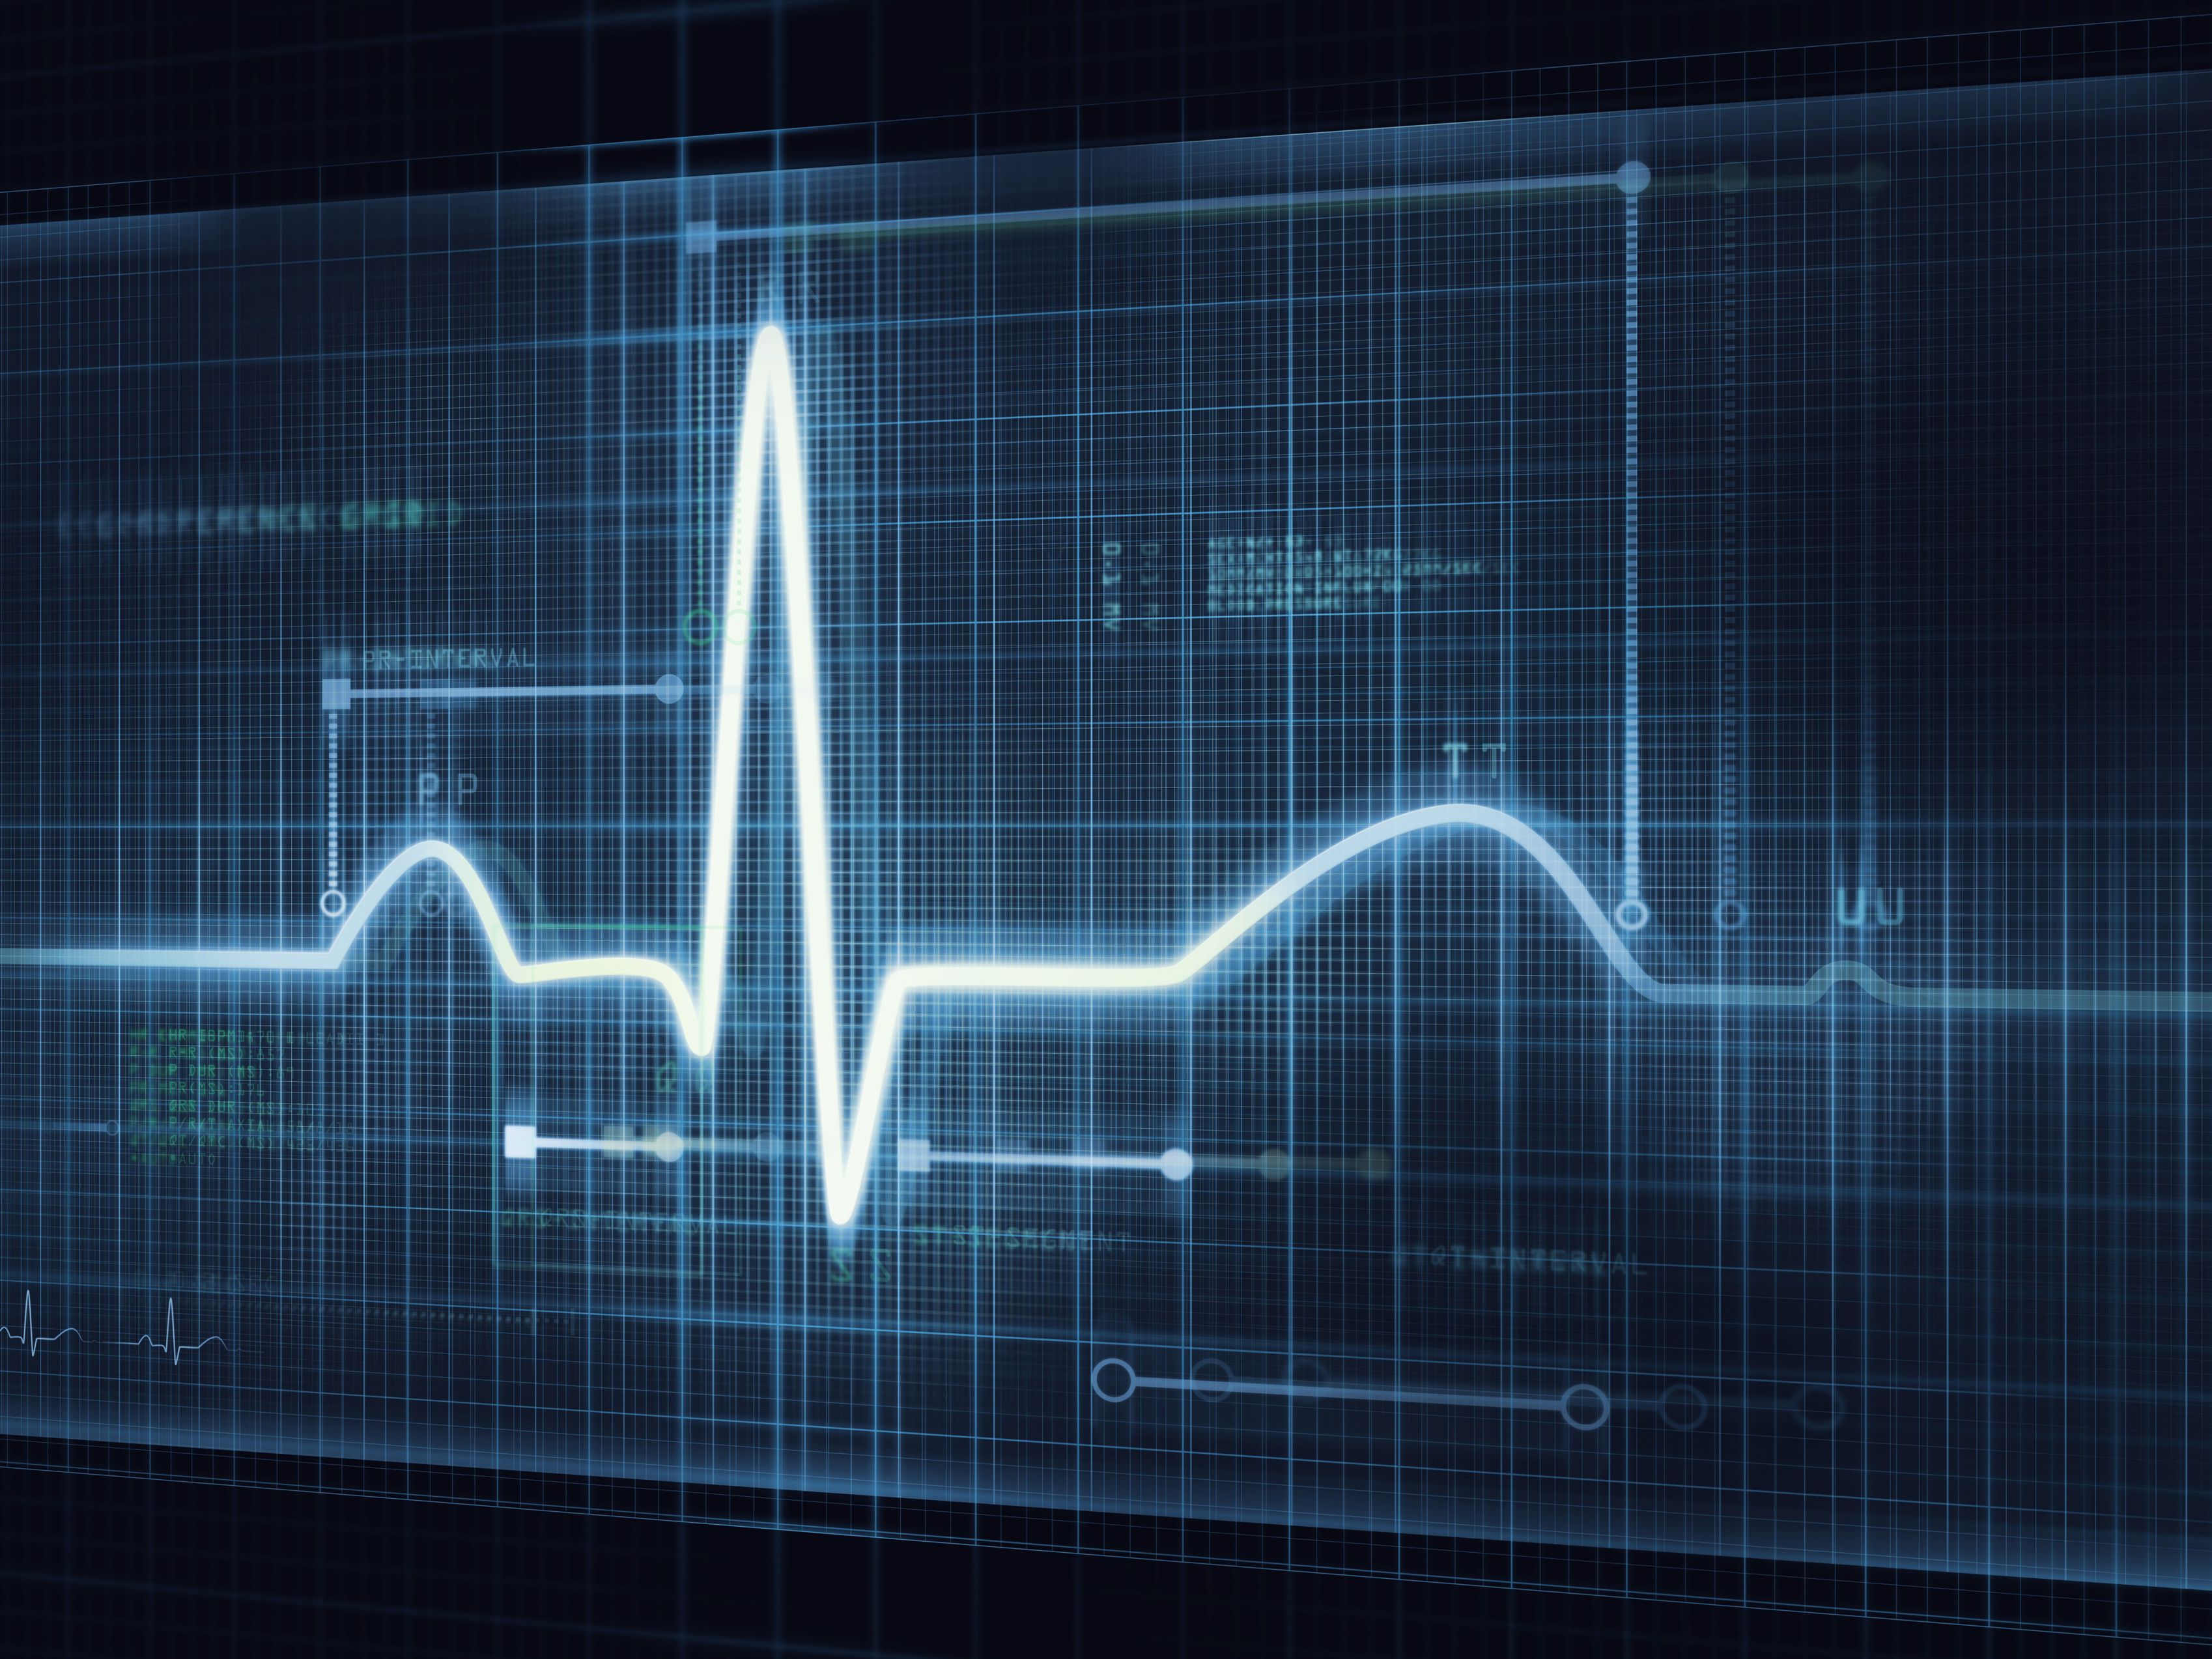 Sick Sinus Syndrome: Causes, Symptoms, and Treatment